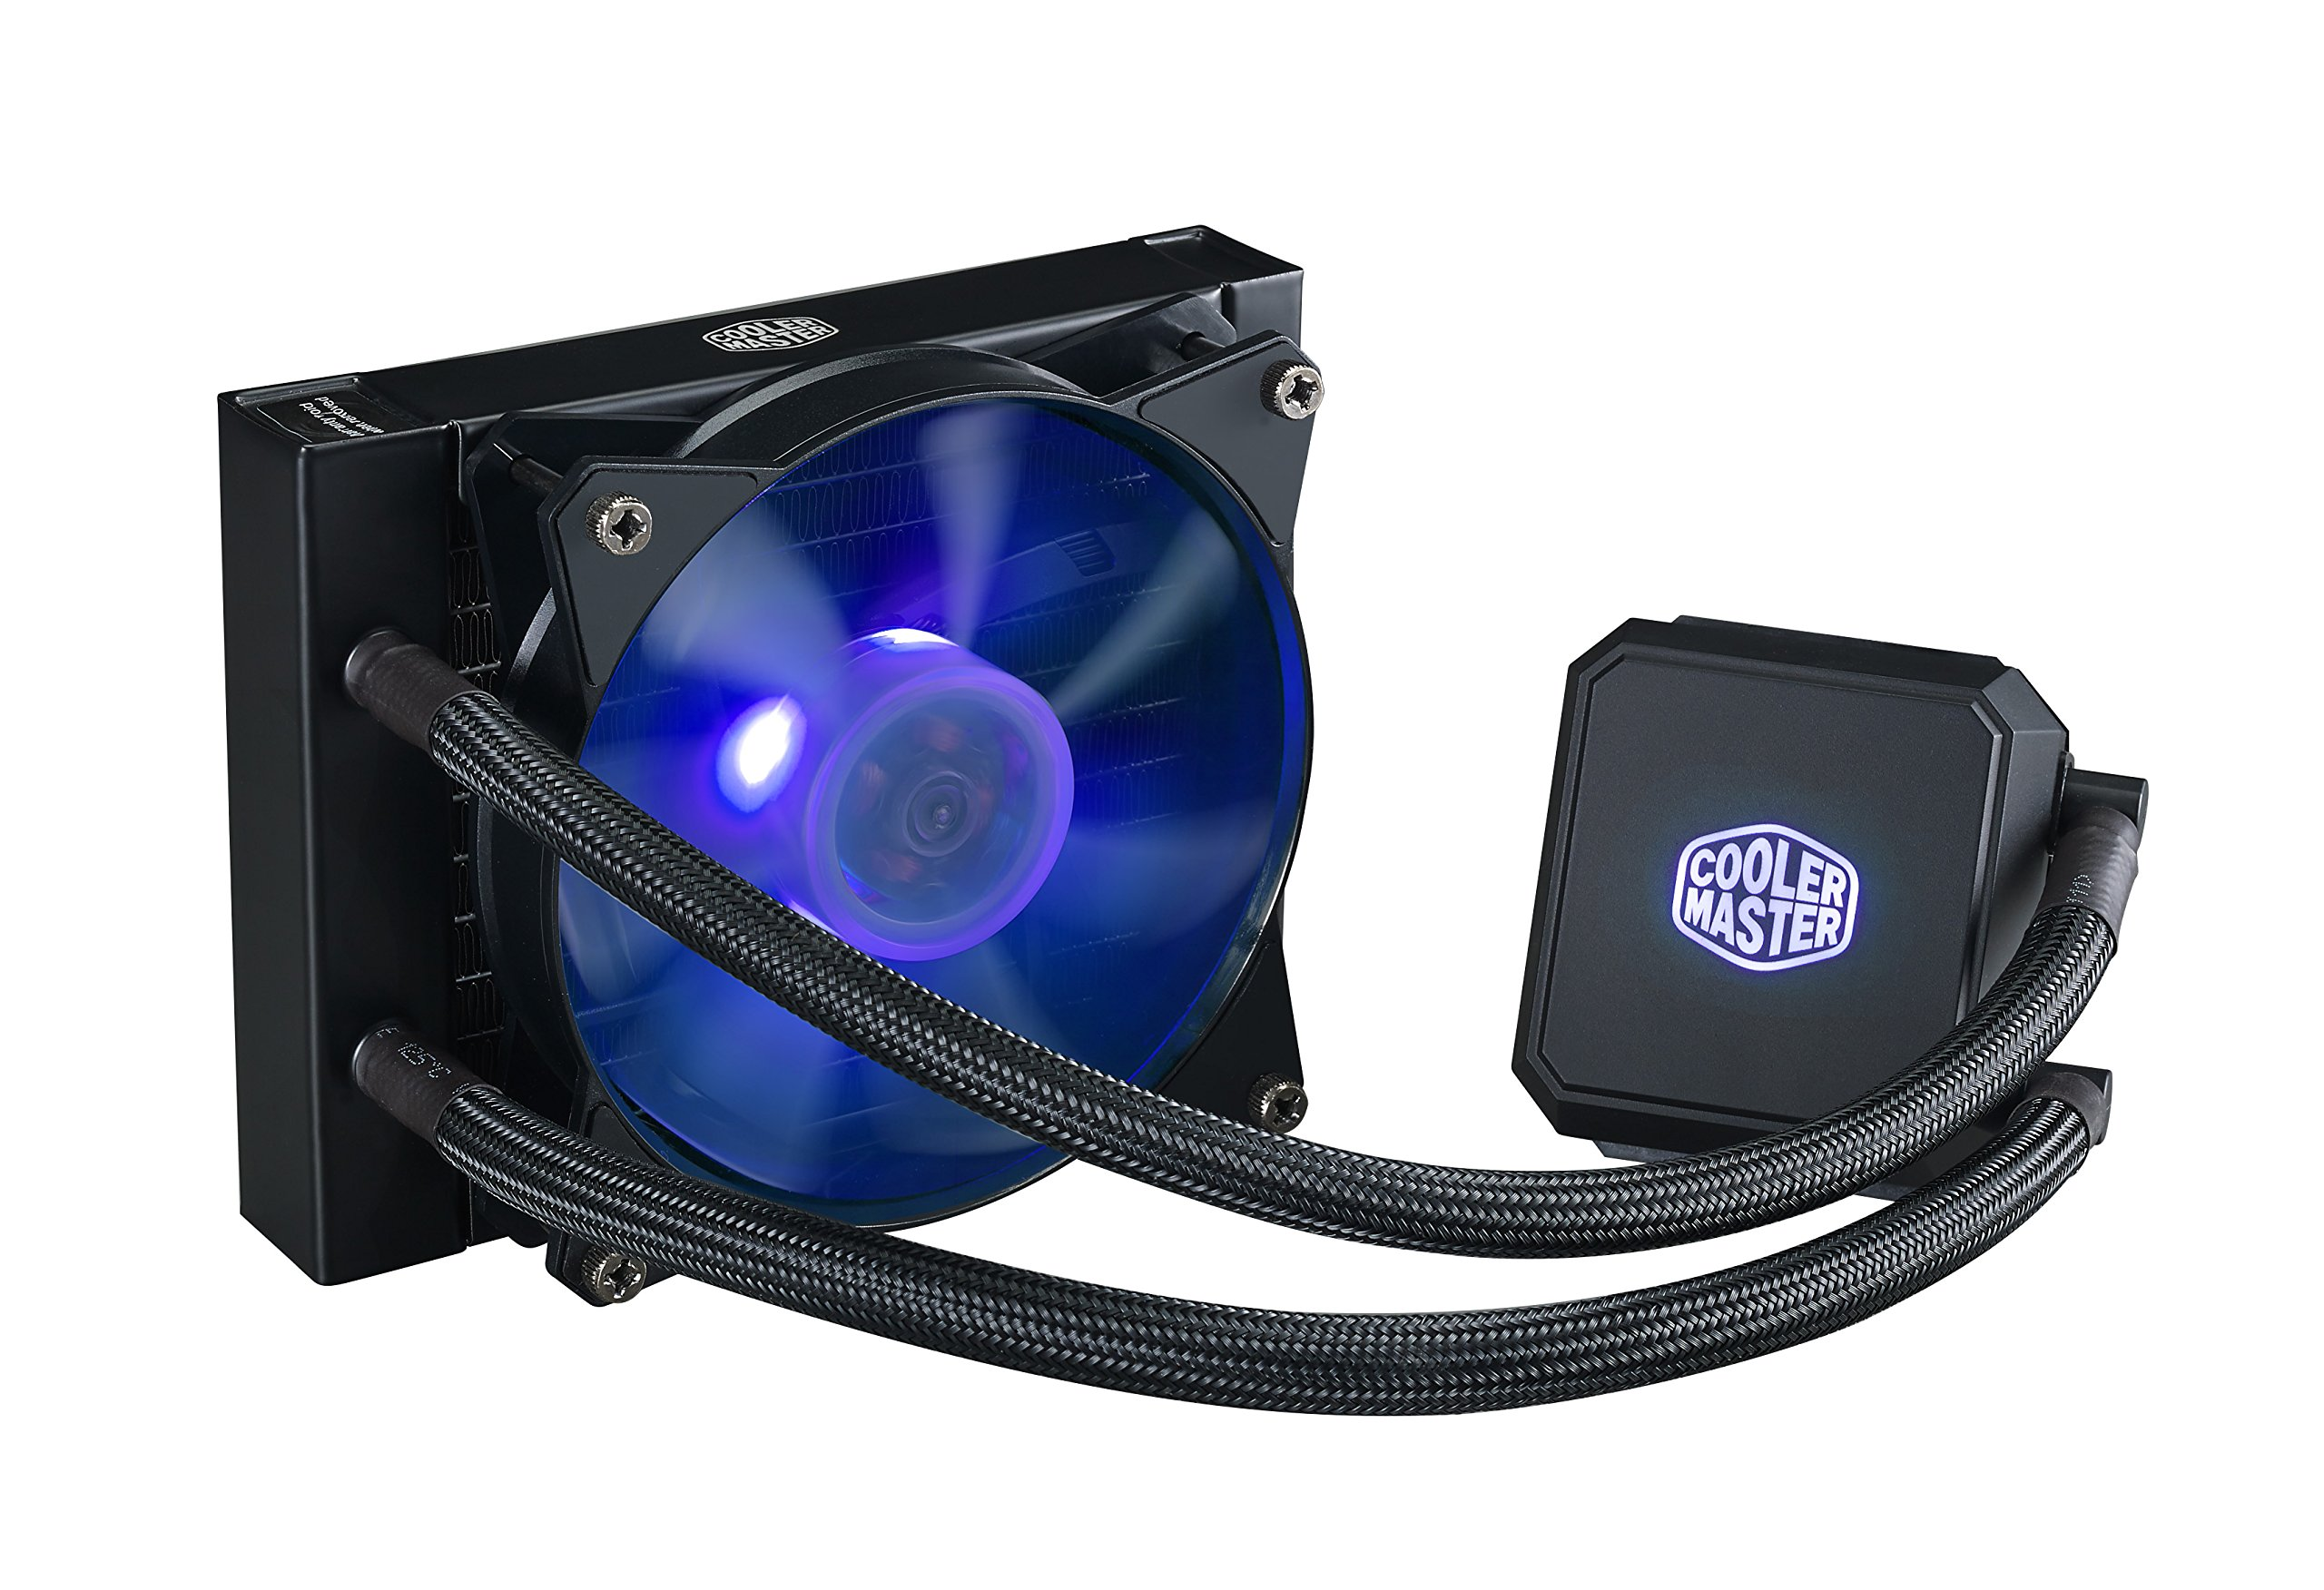 Cooler Master MasterLiquid LC120E RGB All-in-one CPU Liquid Cooler with Dual Chamber Pump Latest Intel/AMD Support (MLA-D12M-A18PC-R1) by Cooler Master